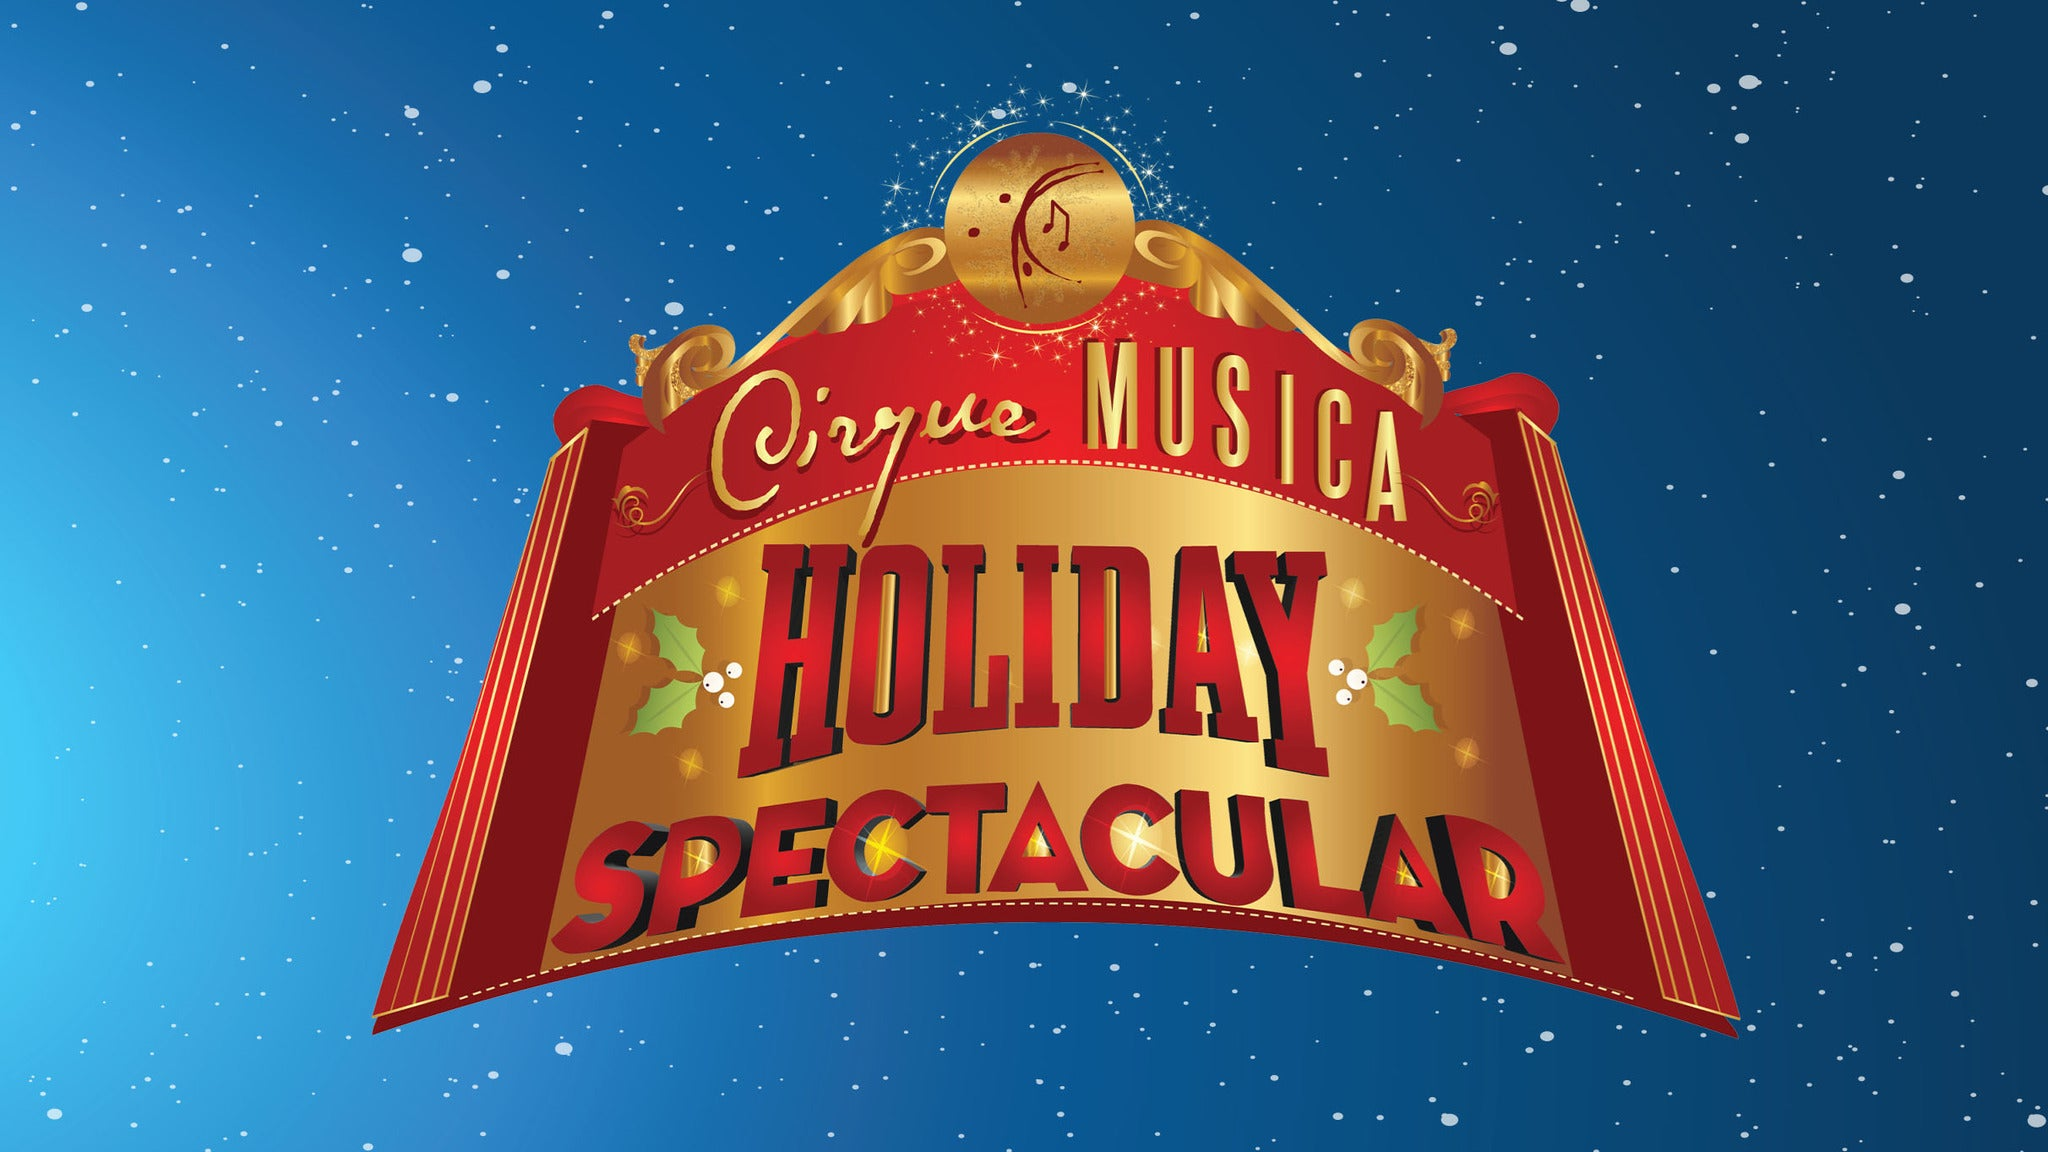 Cirque Musica Holiday Spectacular presale password